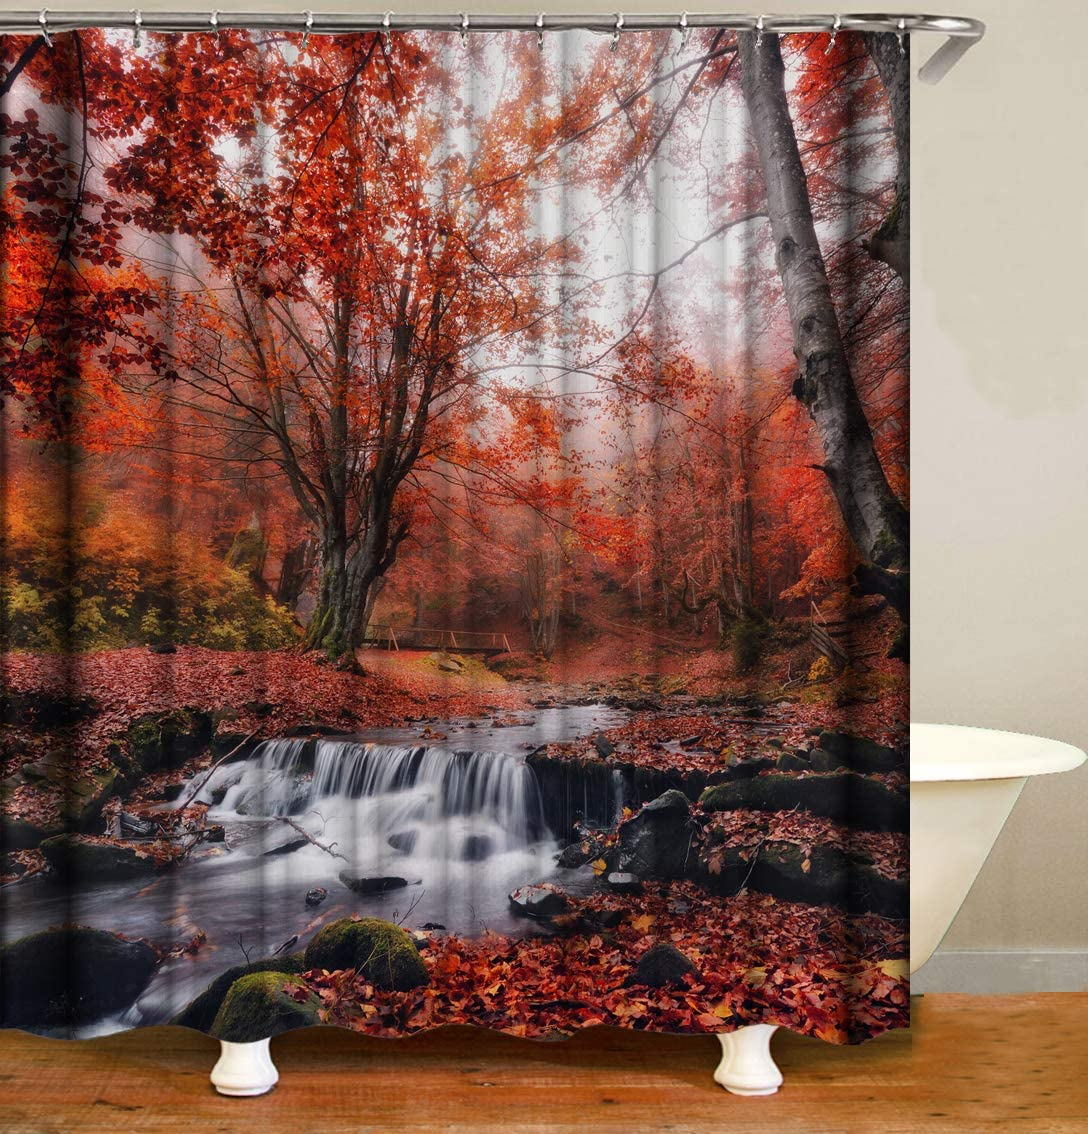 YUYASM Autumn Forest Shower Curtain Decor,Red Maple Tree Fallen Leaves River Nature Scenery Fabric Bathroom Curtains,Waterproof Polyester Bath Curtain Set with Hooks 70x70 Inch